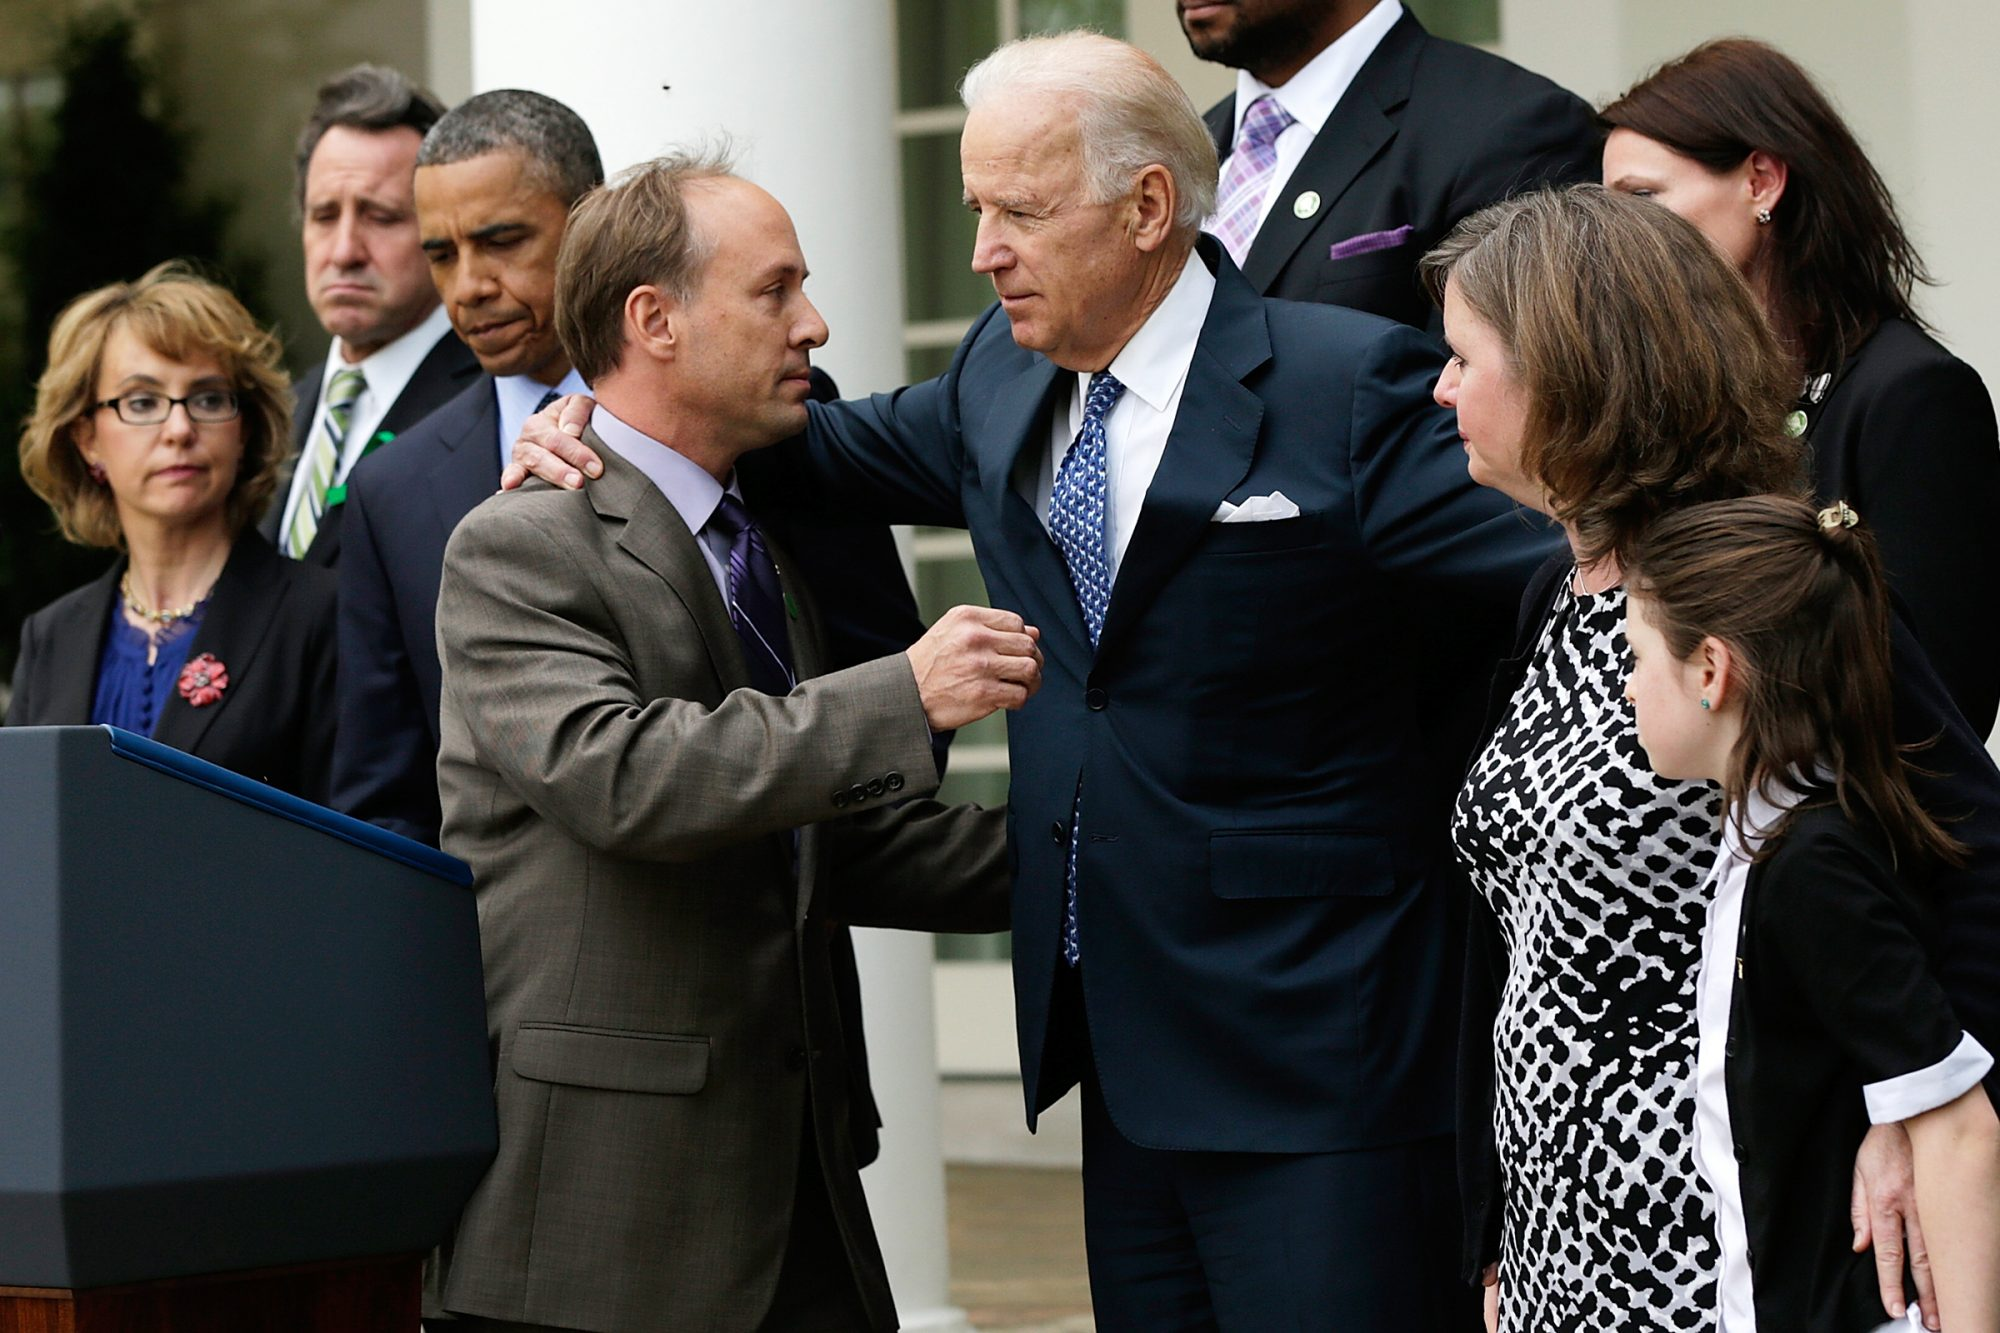 Mark Barden, the father of a victim at Sandy Hook Elementary School, is embraced by Vice President Joe Biden